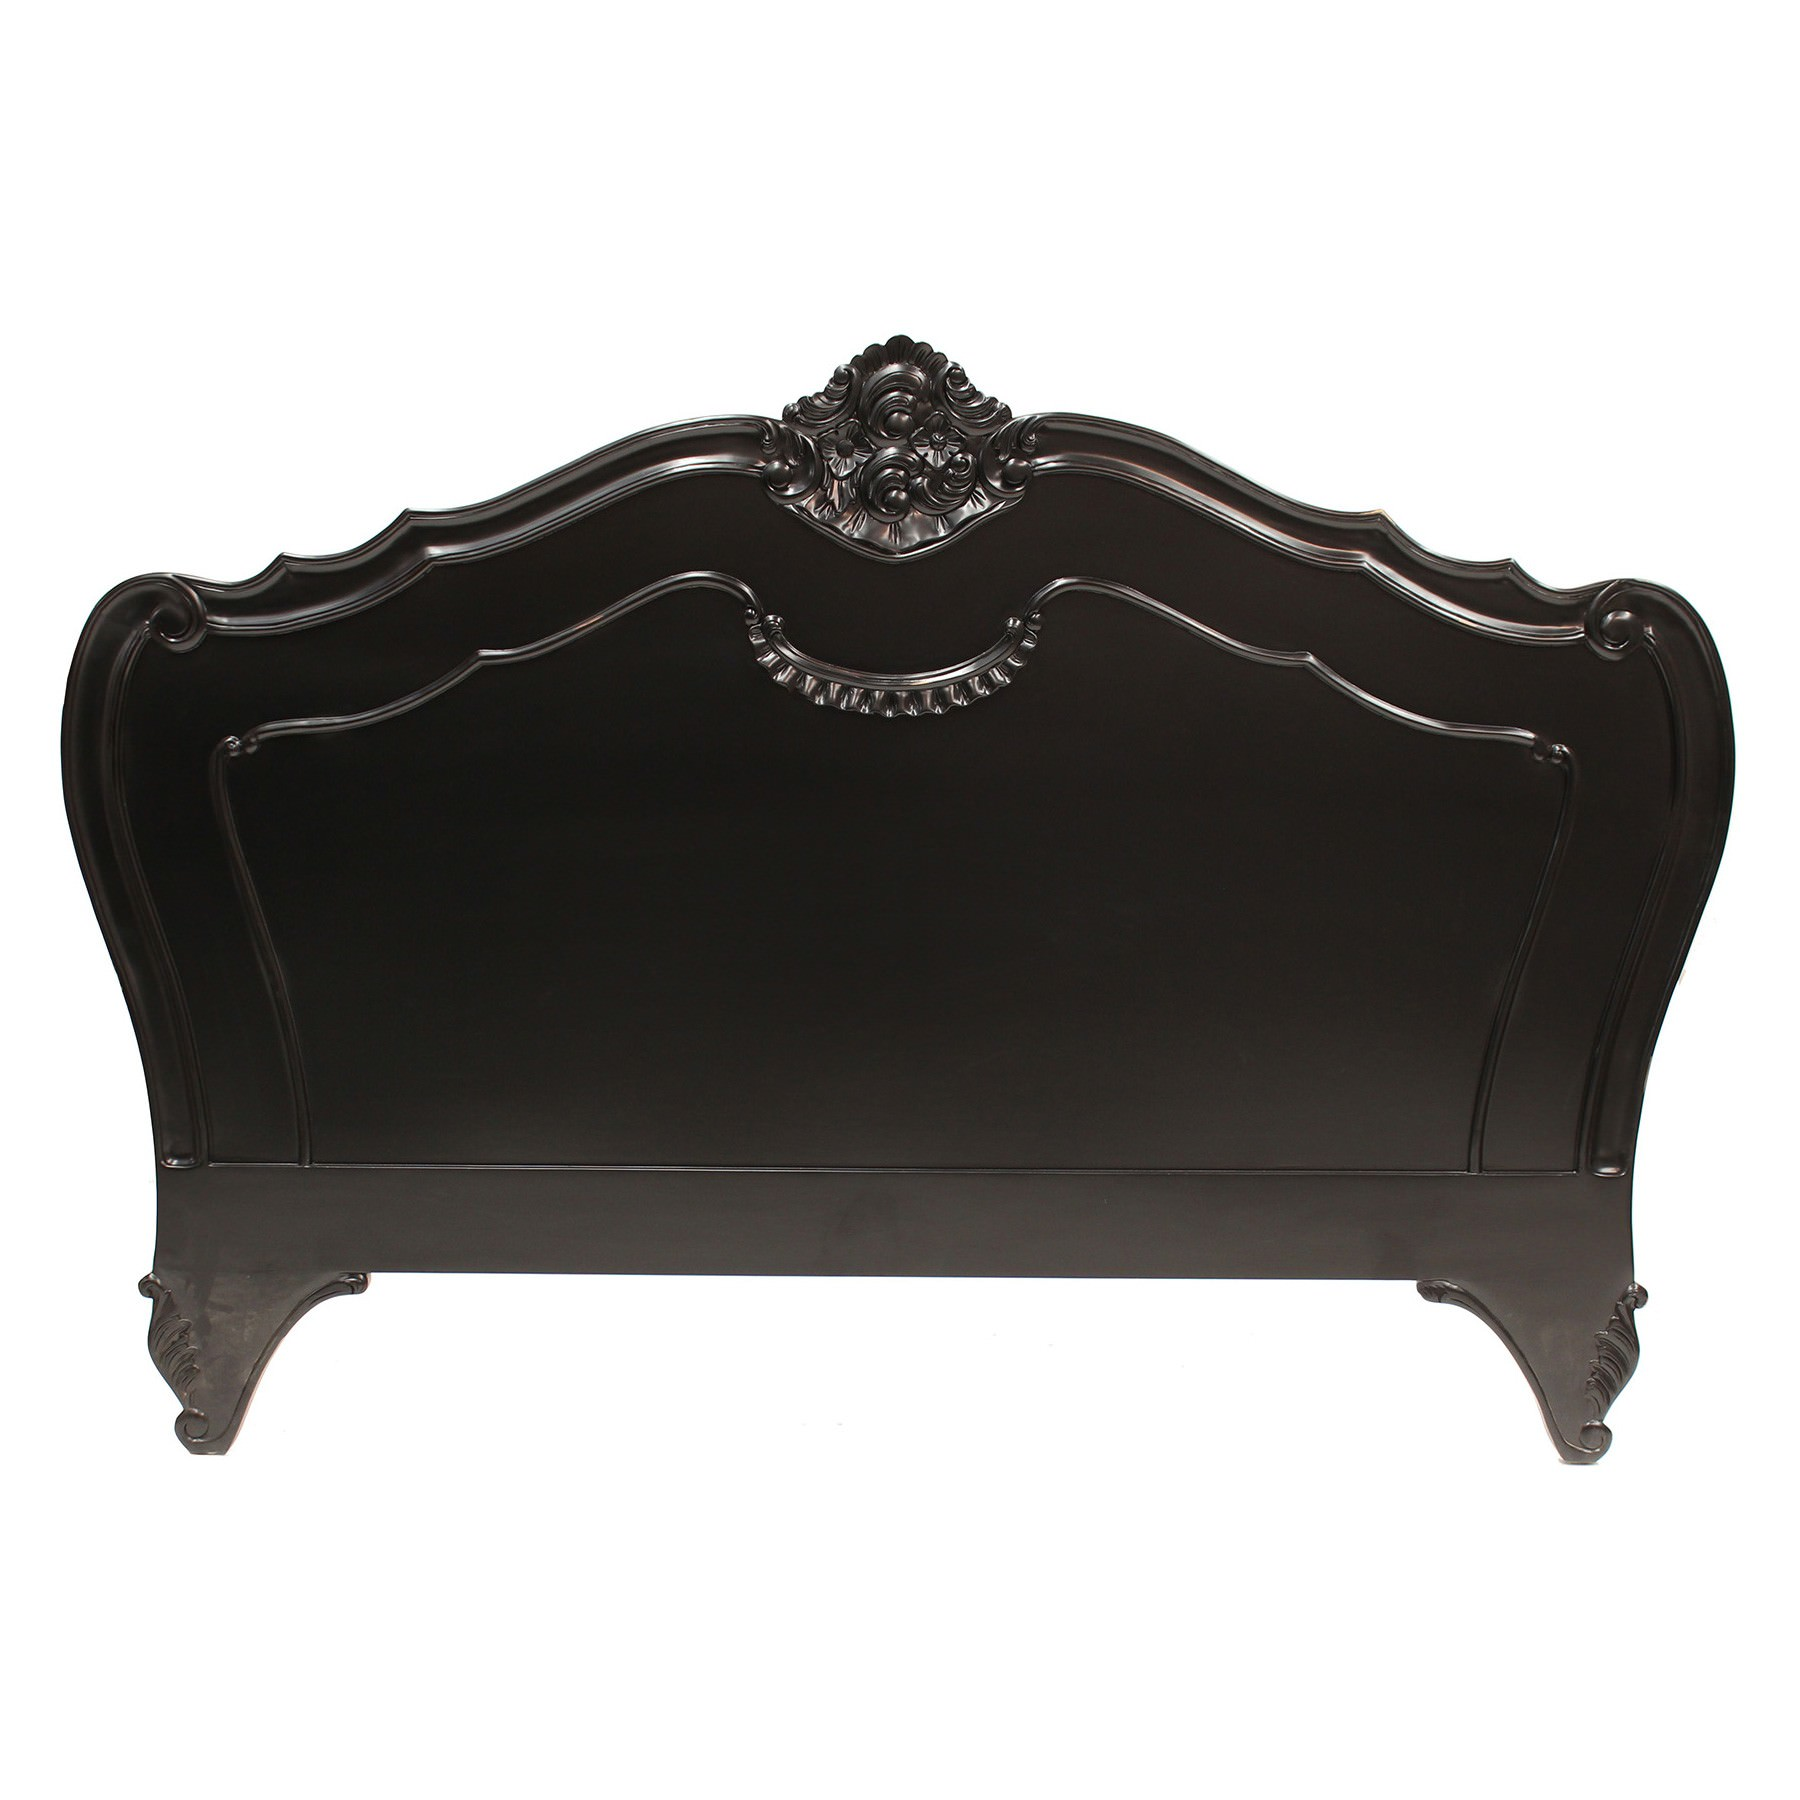 Challuy Hand Crafted Mahogany Queen Size Headboard, Black